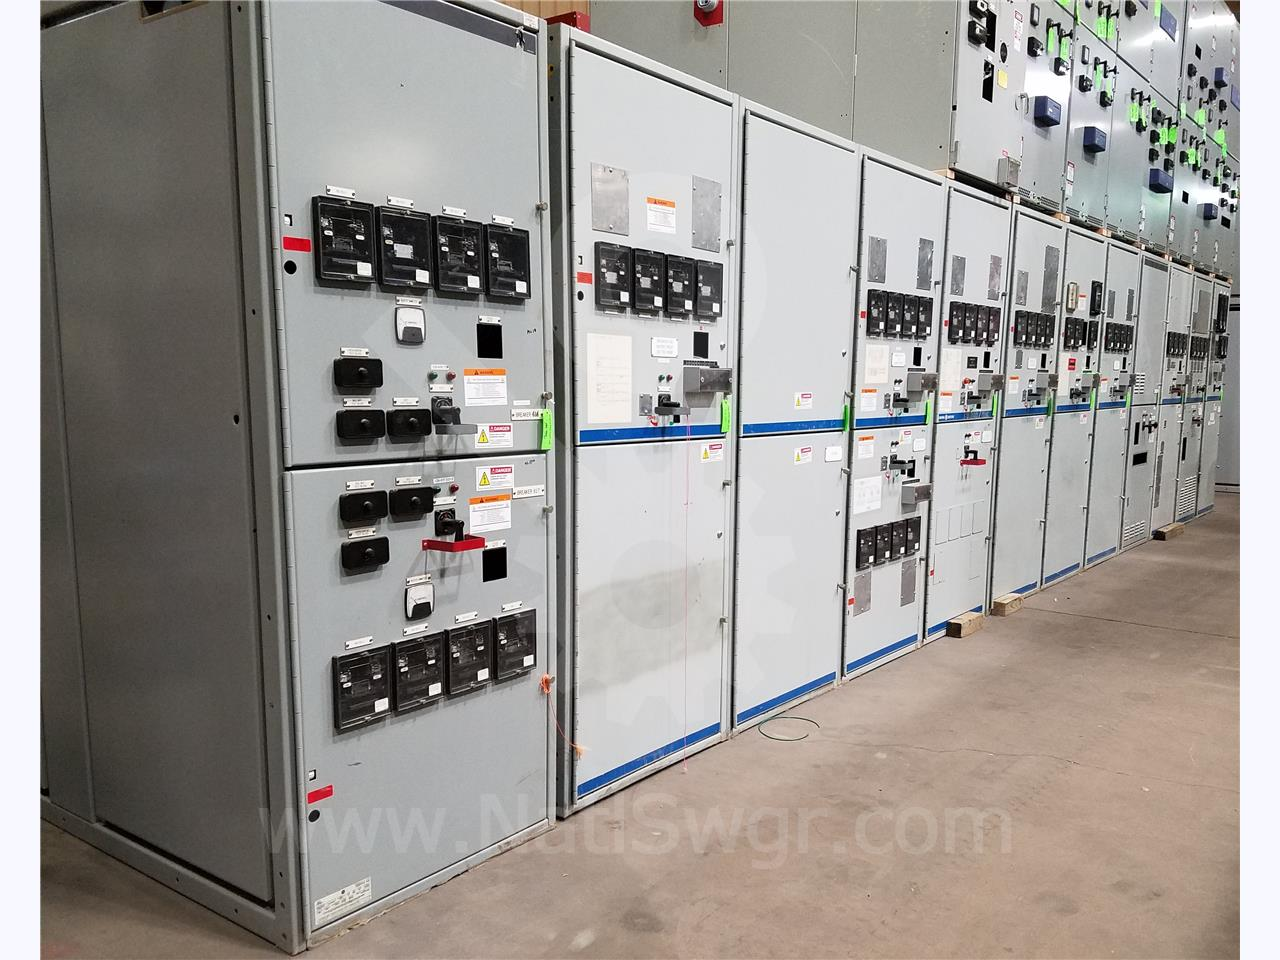 15KV GE / General Electric VB/VB1 INDOOR SWITCHGEAR LINEUP 1-MAIN SECTION, 1- TIE SECTION, 8-FEEDER SECTIONS, 1-PT/CPT SECTION, 1-TIE BUS SECTION